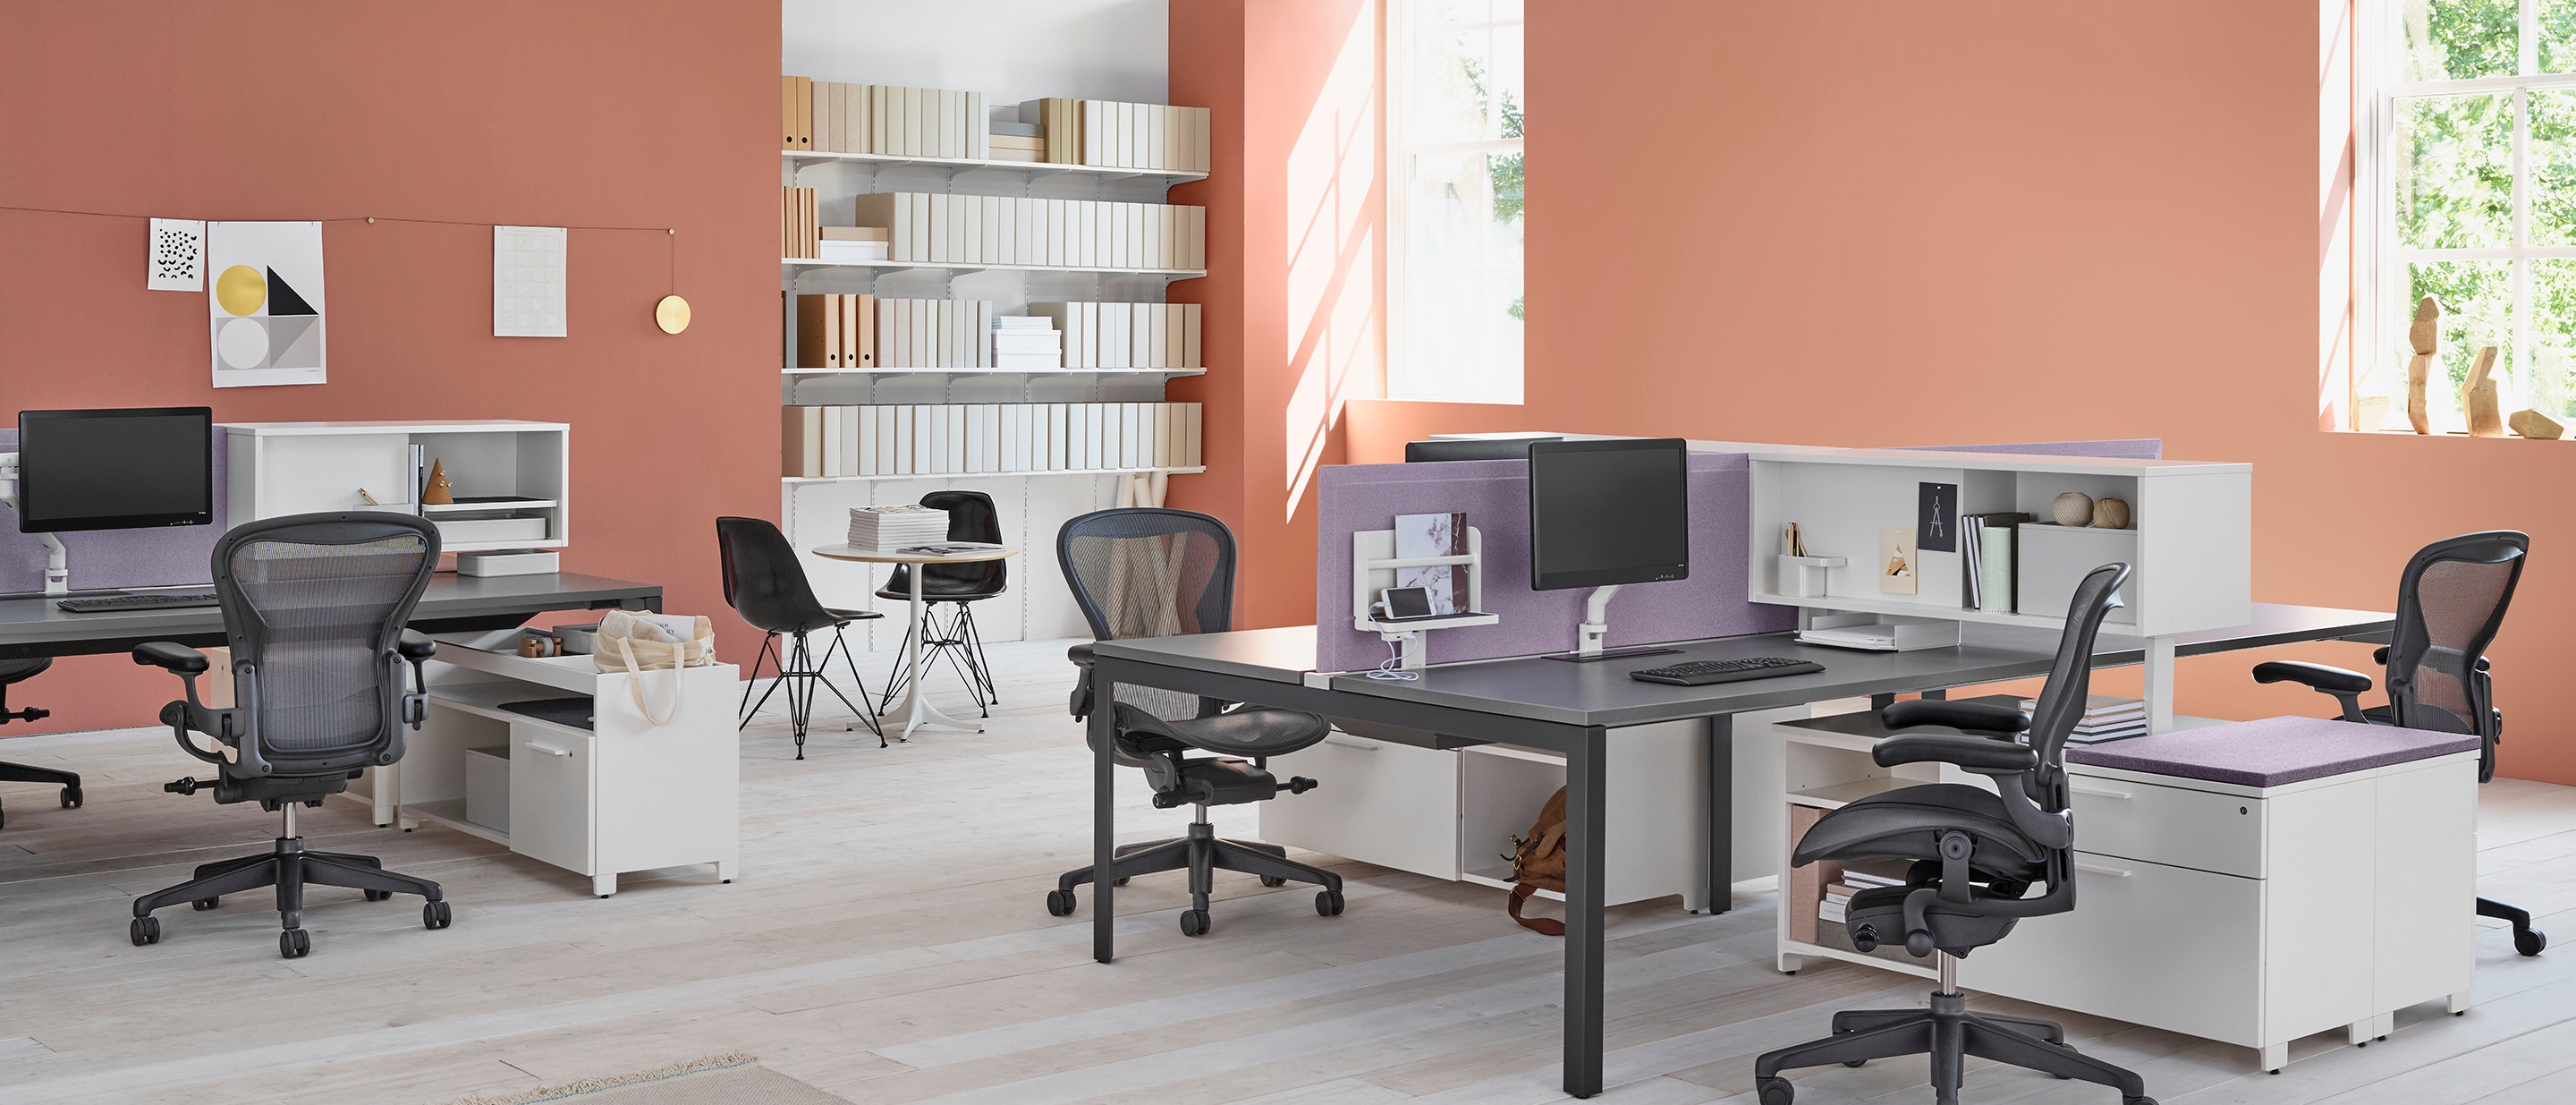 A workspace setting with two Layout Studio benches with purple fabric center privacy screens, Aeron Chairs, Tu Storage cubbies, and Tu credenzas.